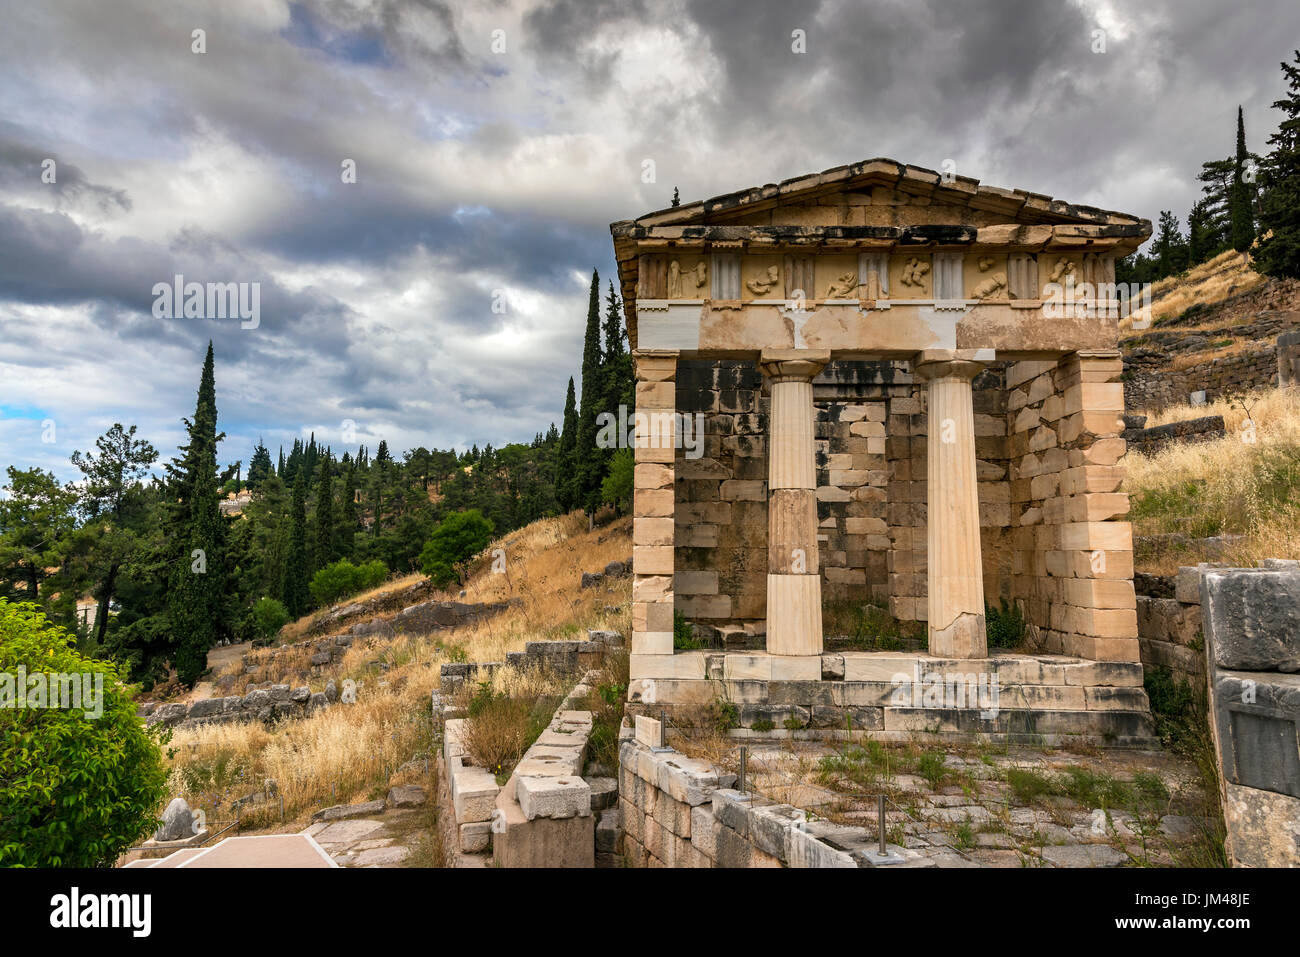 Athenian Treasury, Delphi, Central Greece, Greece Stock Photo